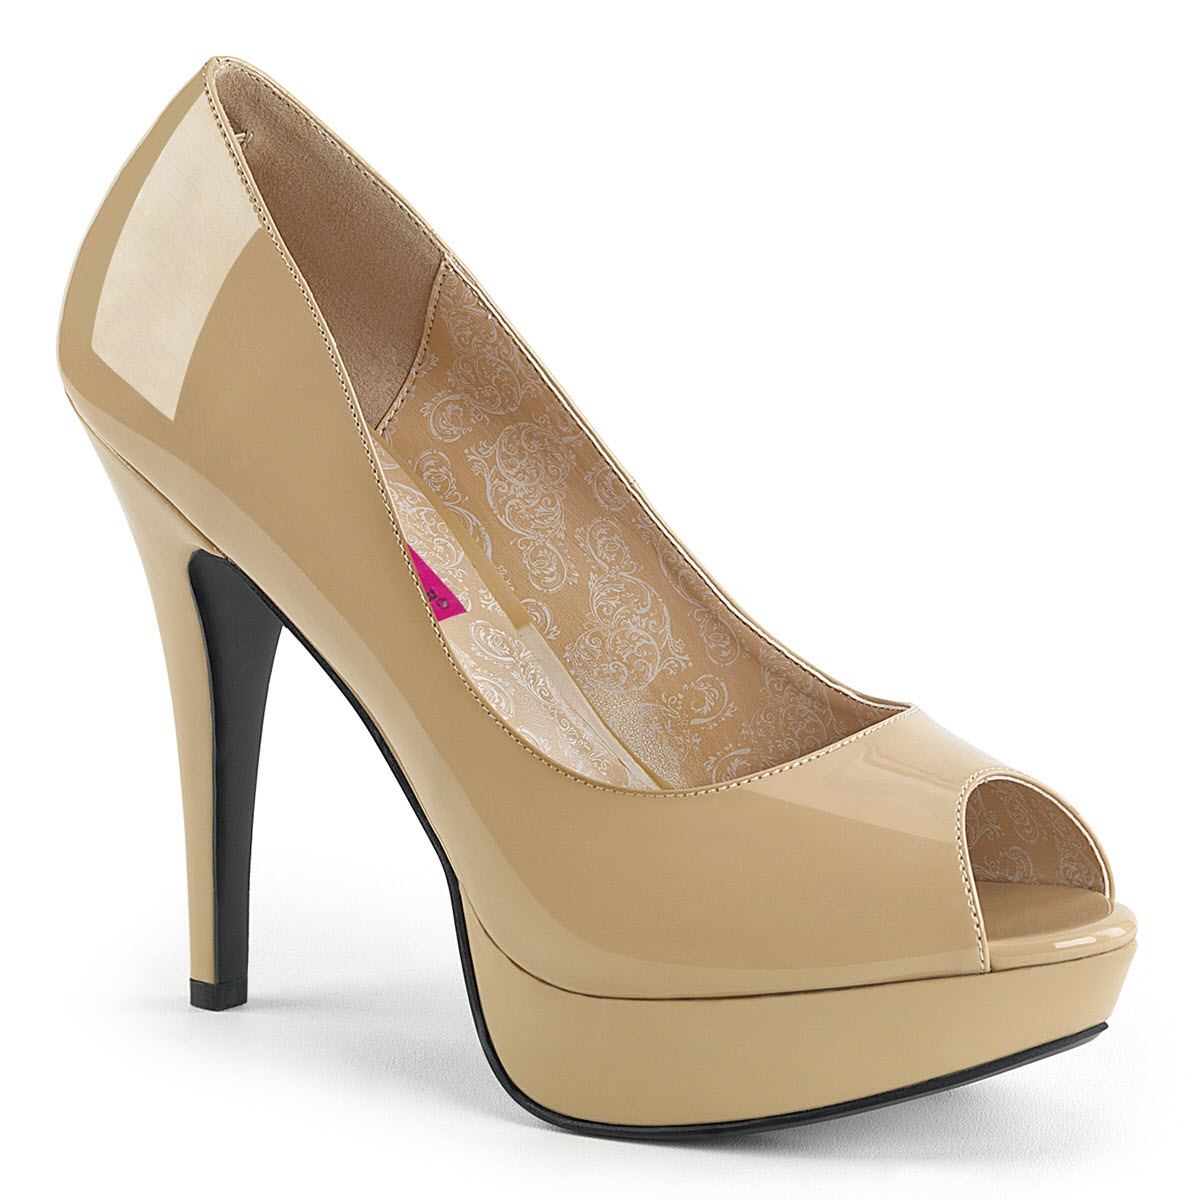 Image of Peep-Toe Pumps, CHLOE-01, Lack, Beige-15